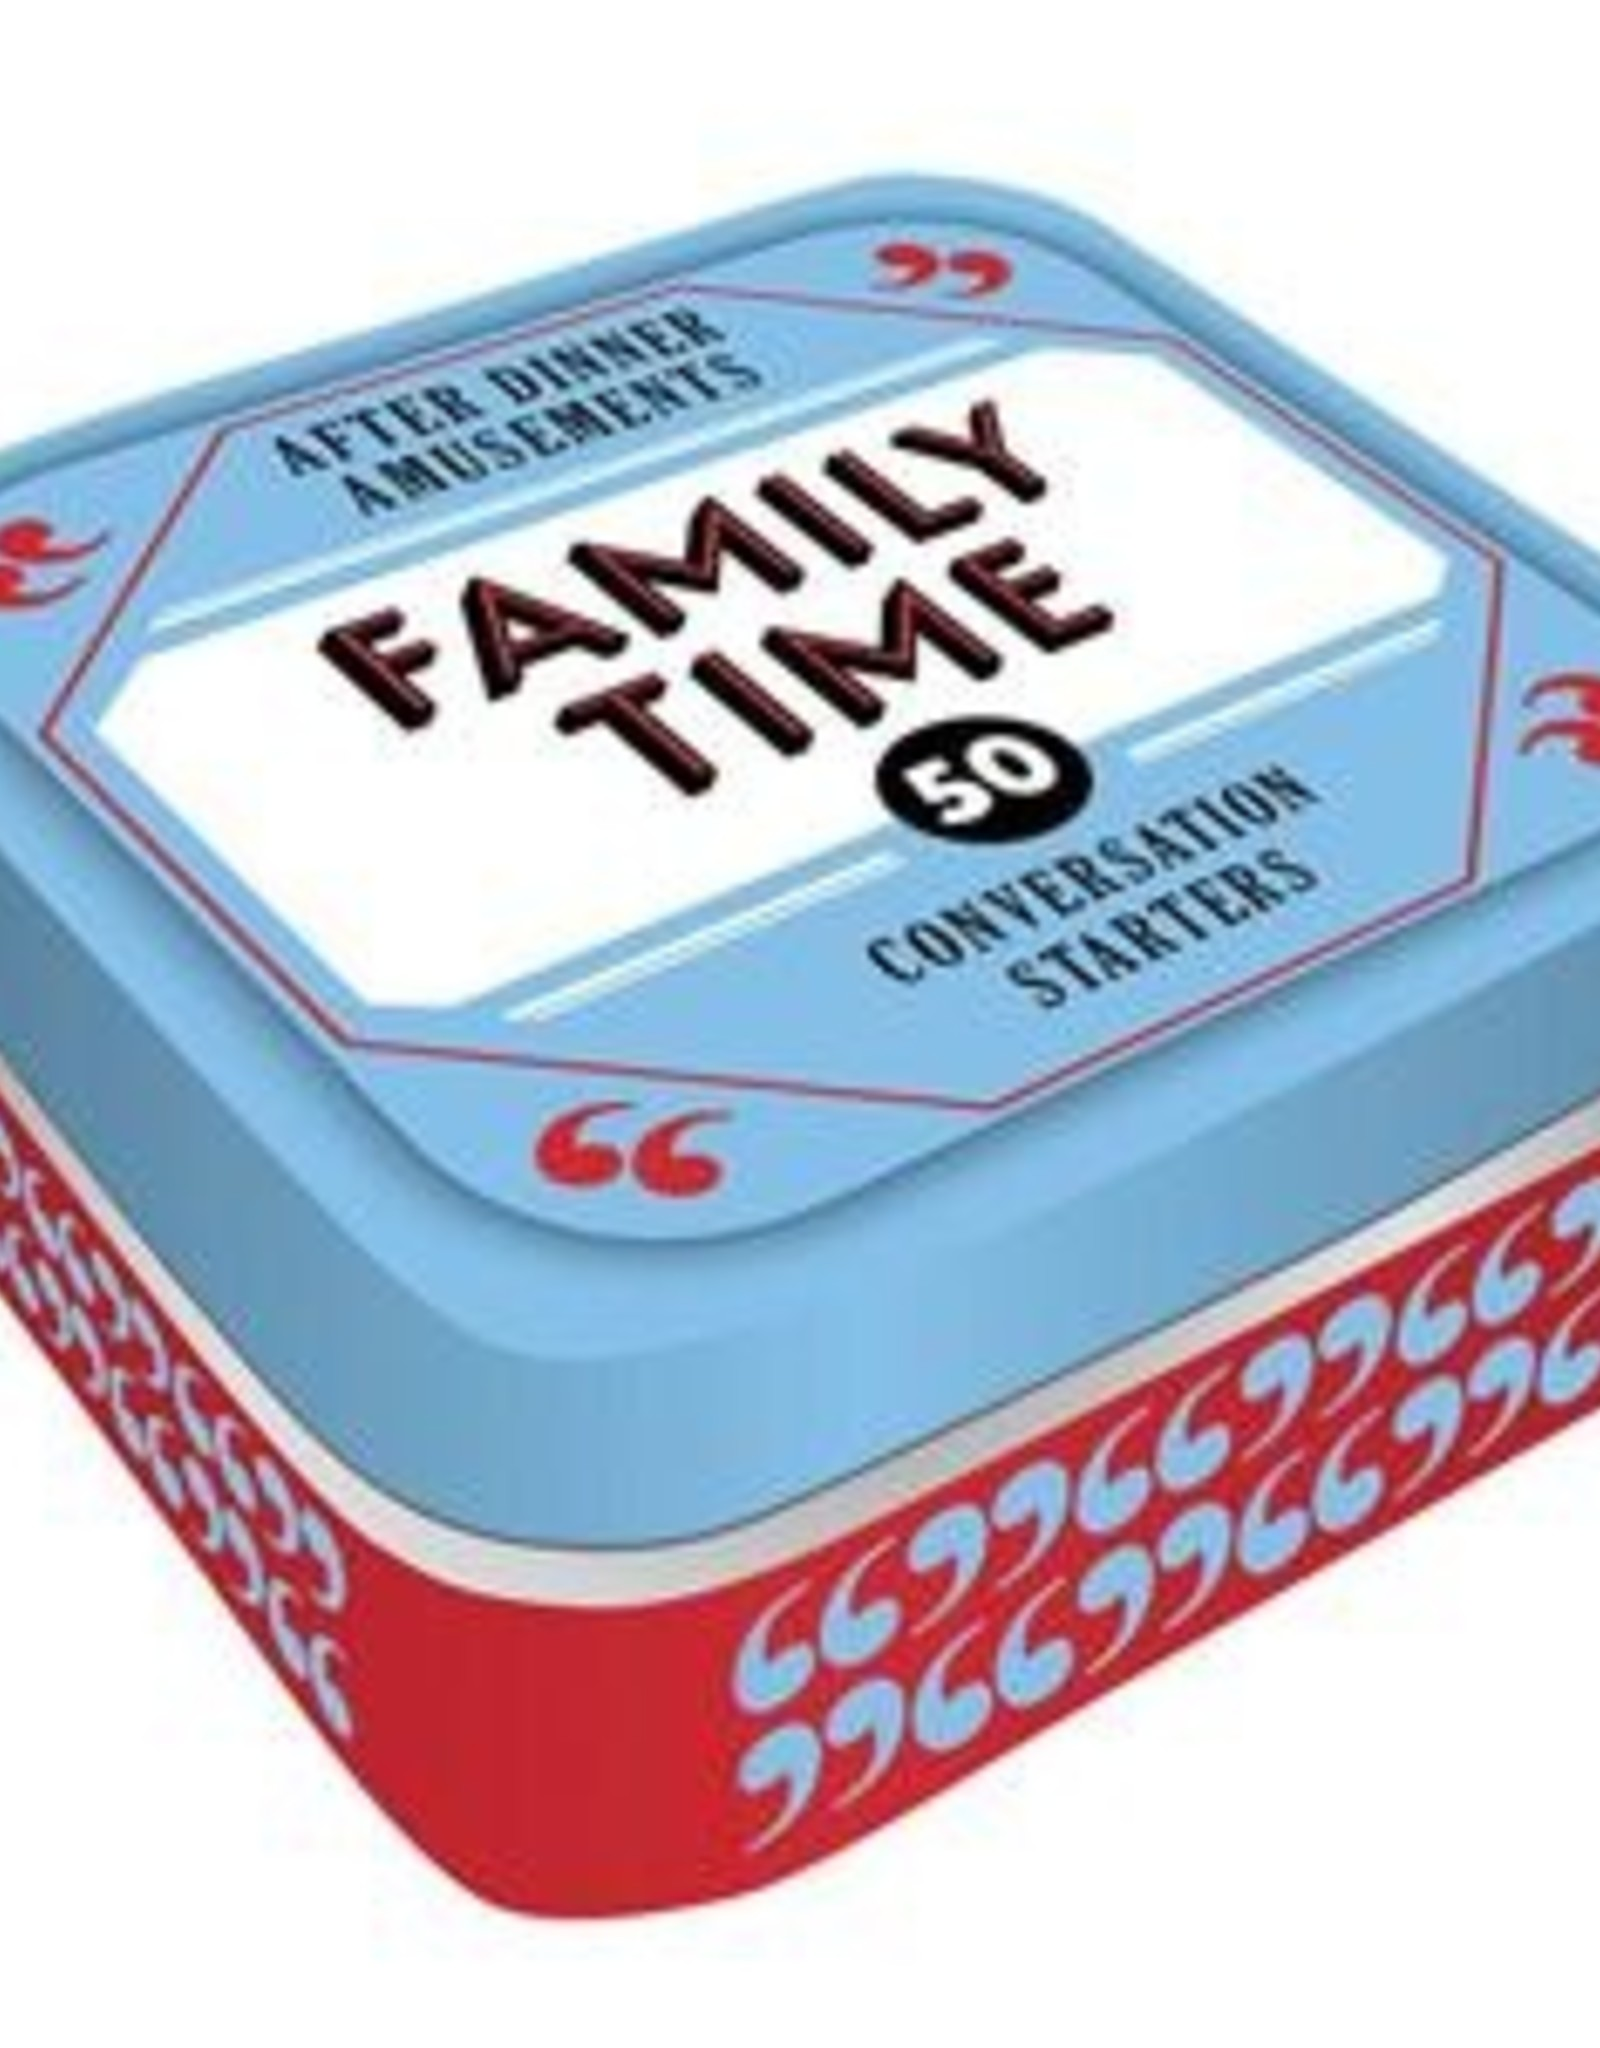 Game Tins - Family Time